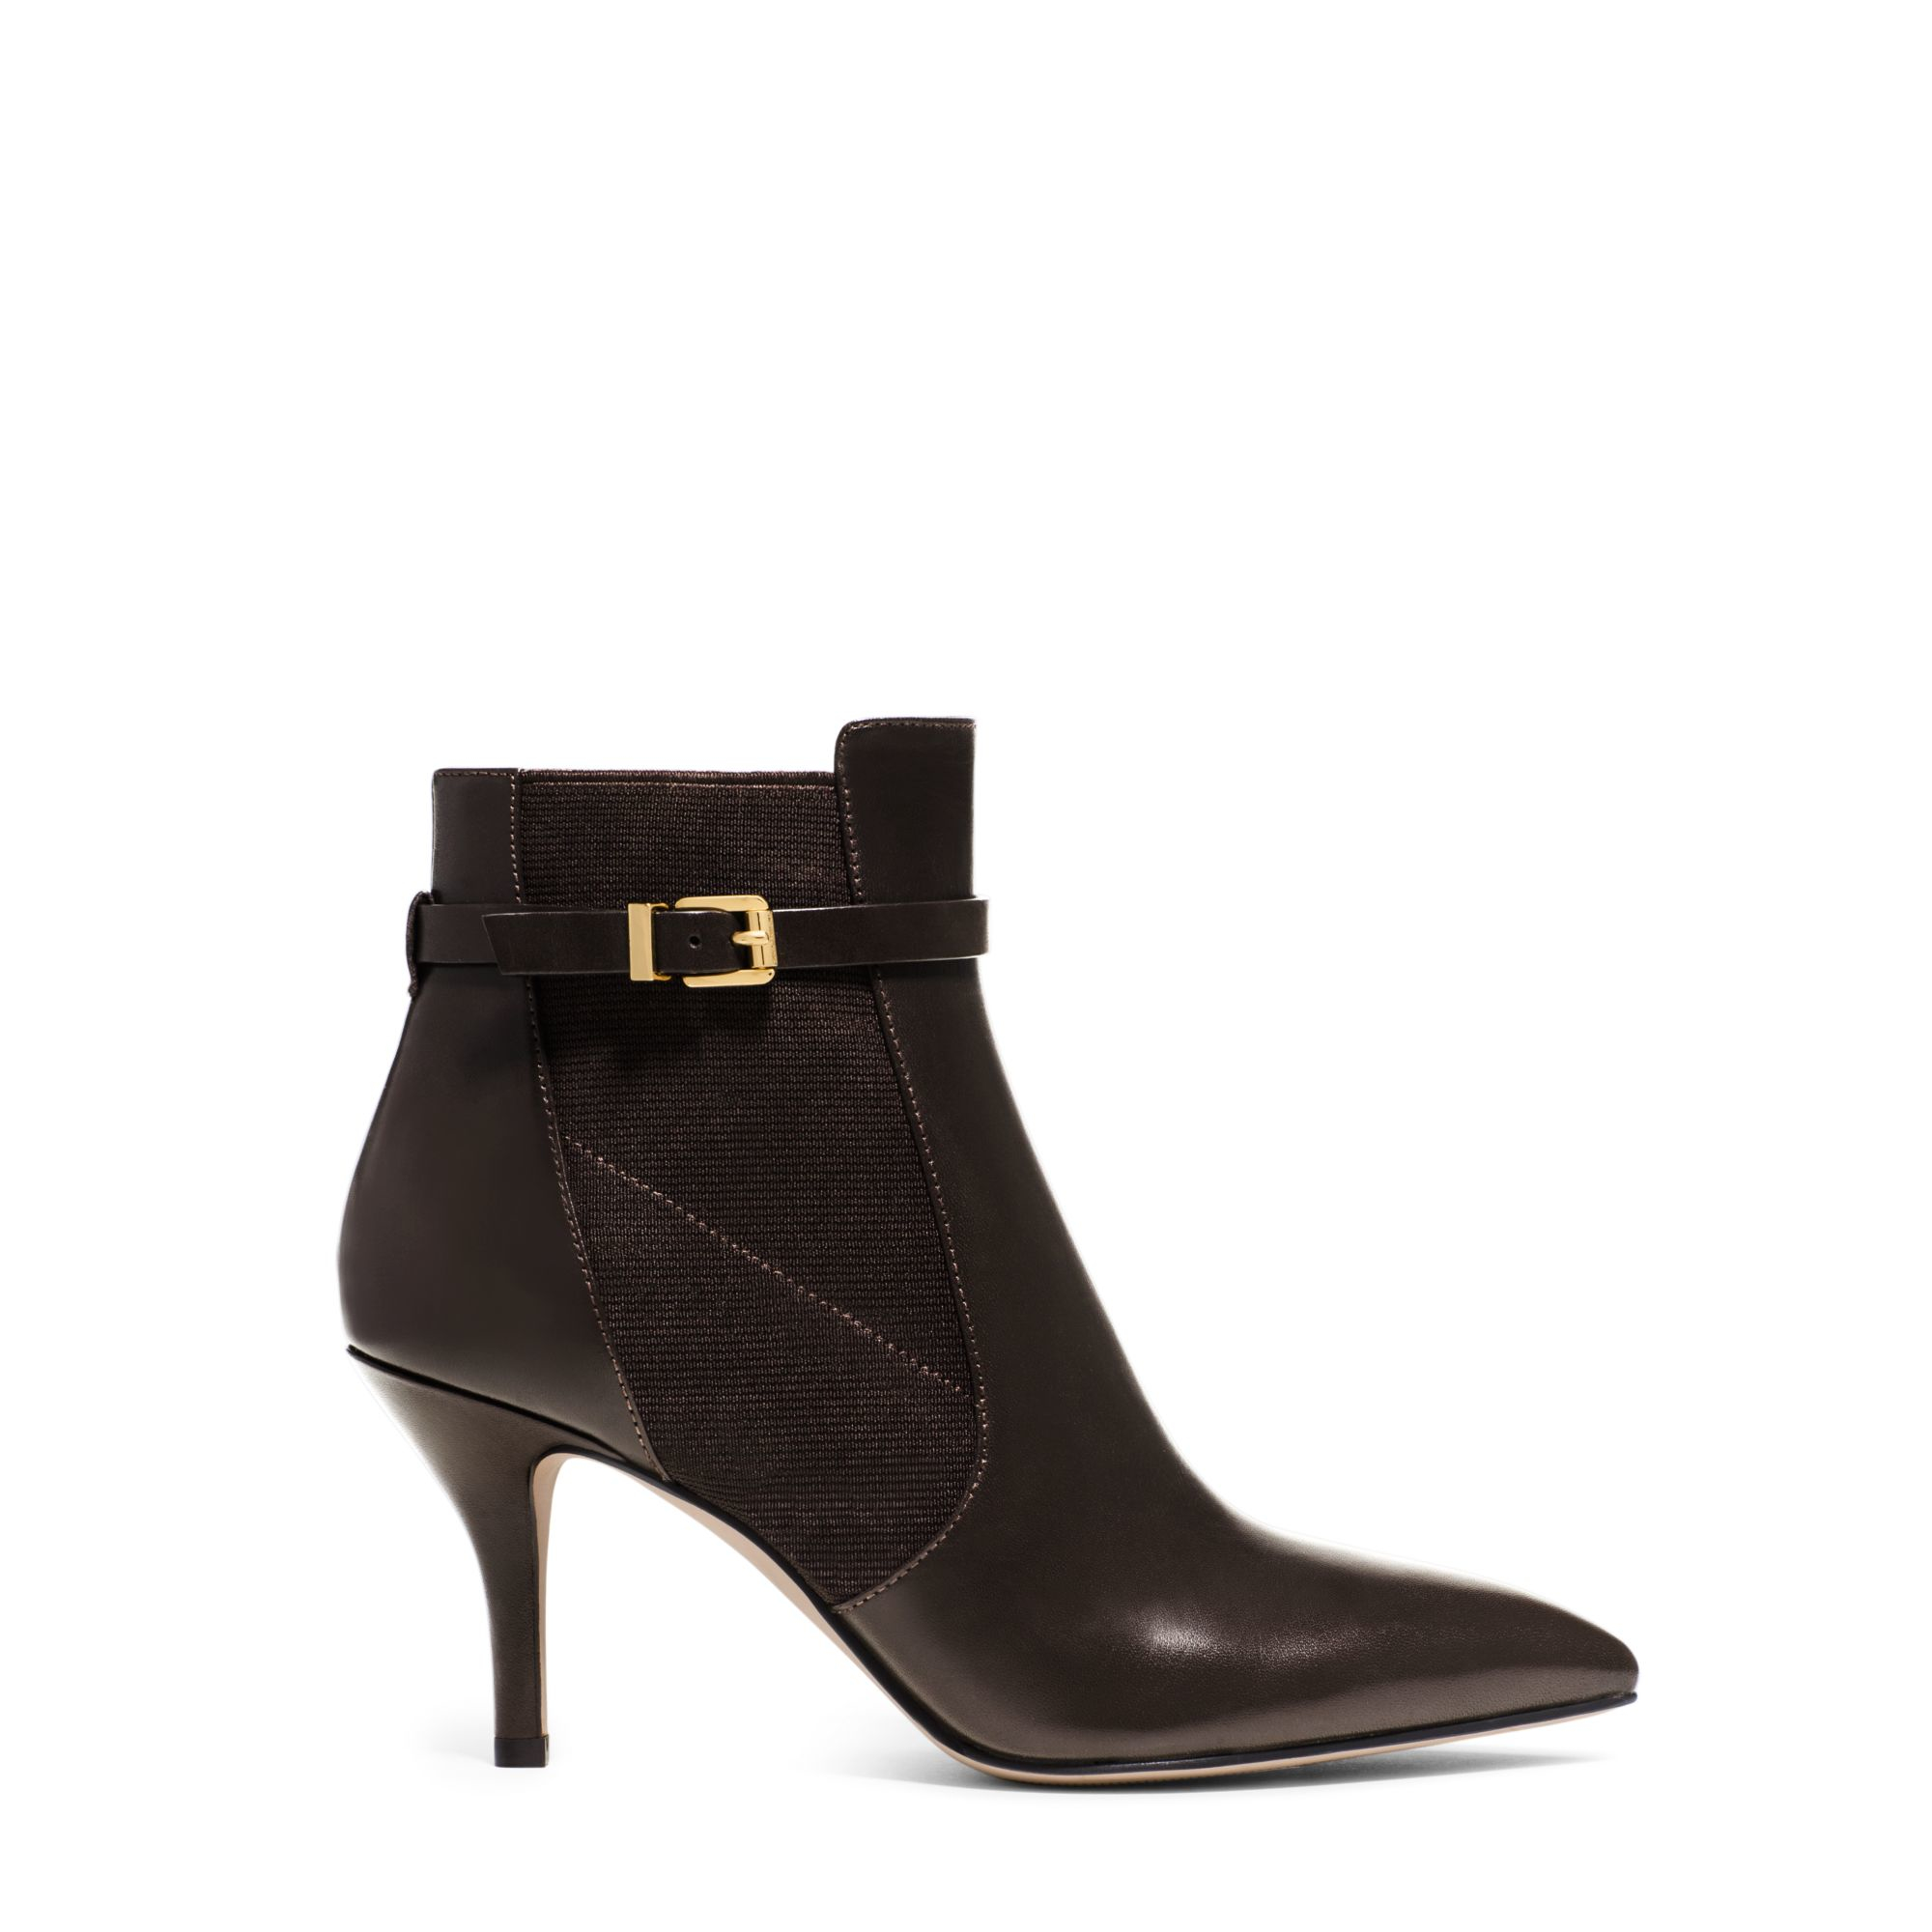 michael kors woods leather ankle boot in brown chocolate. Black Bedroom Furniture Sets. Home Design Ideas